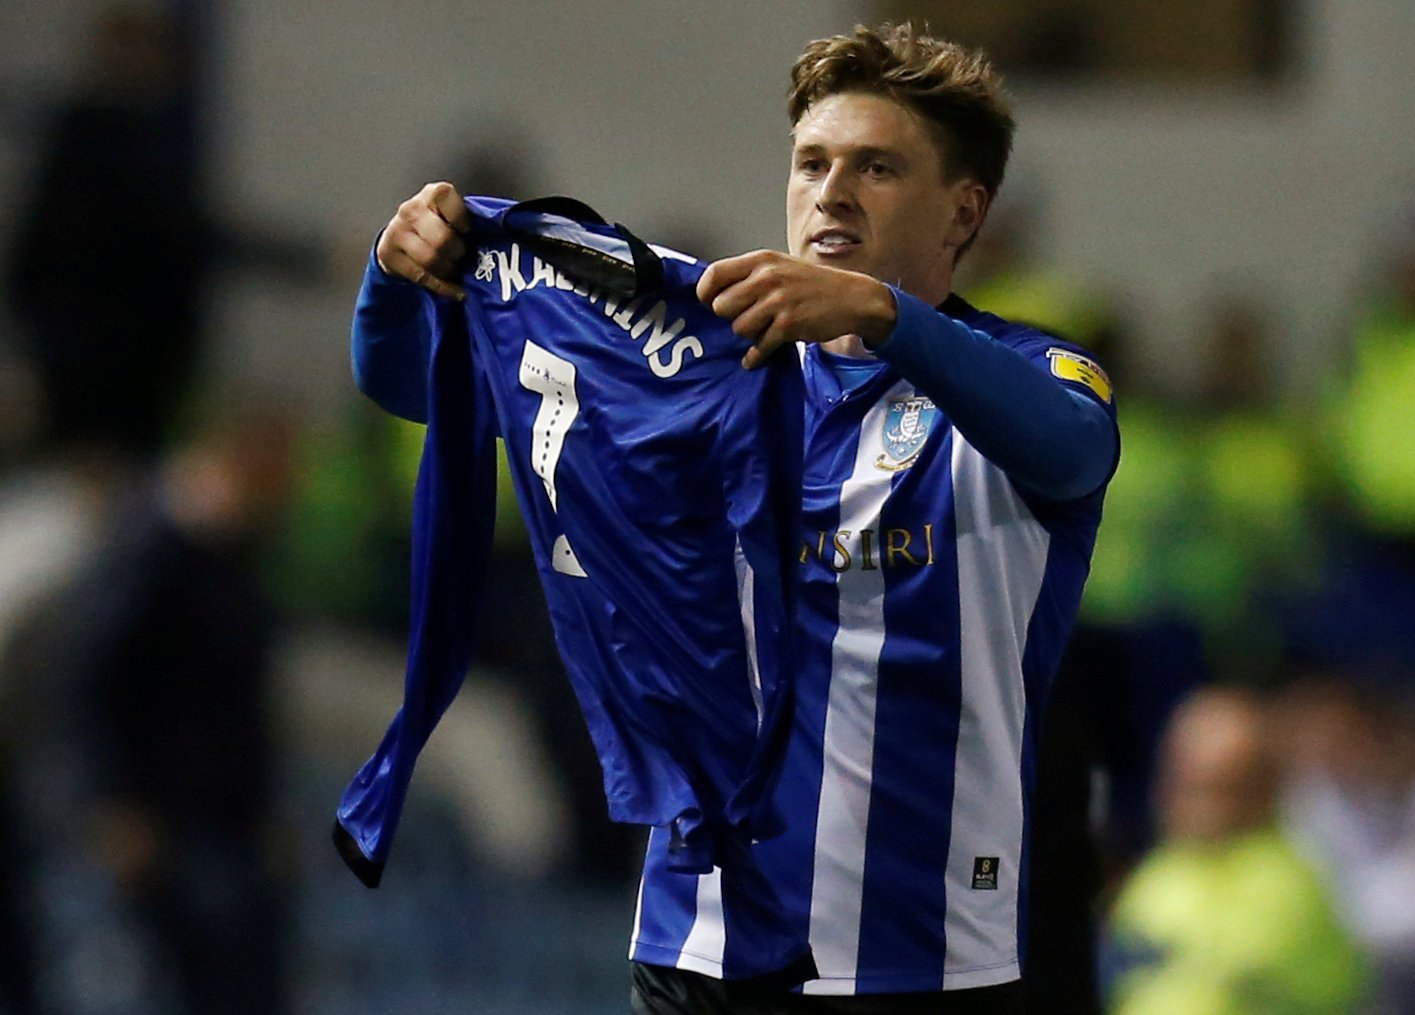 Adam Reach has insisted he will stay at Sheffield Wednesday